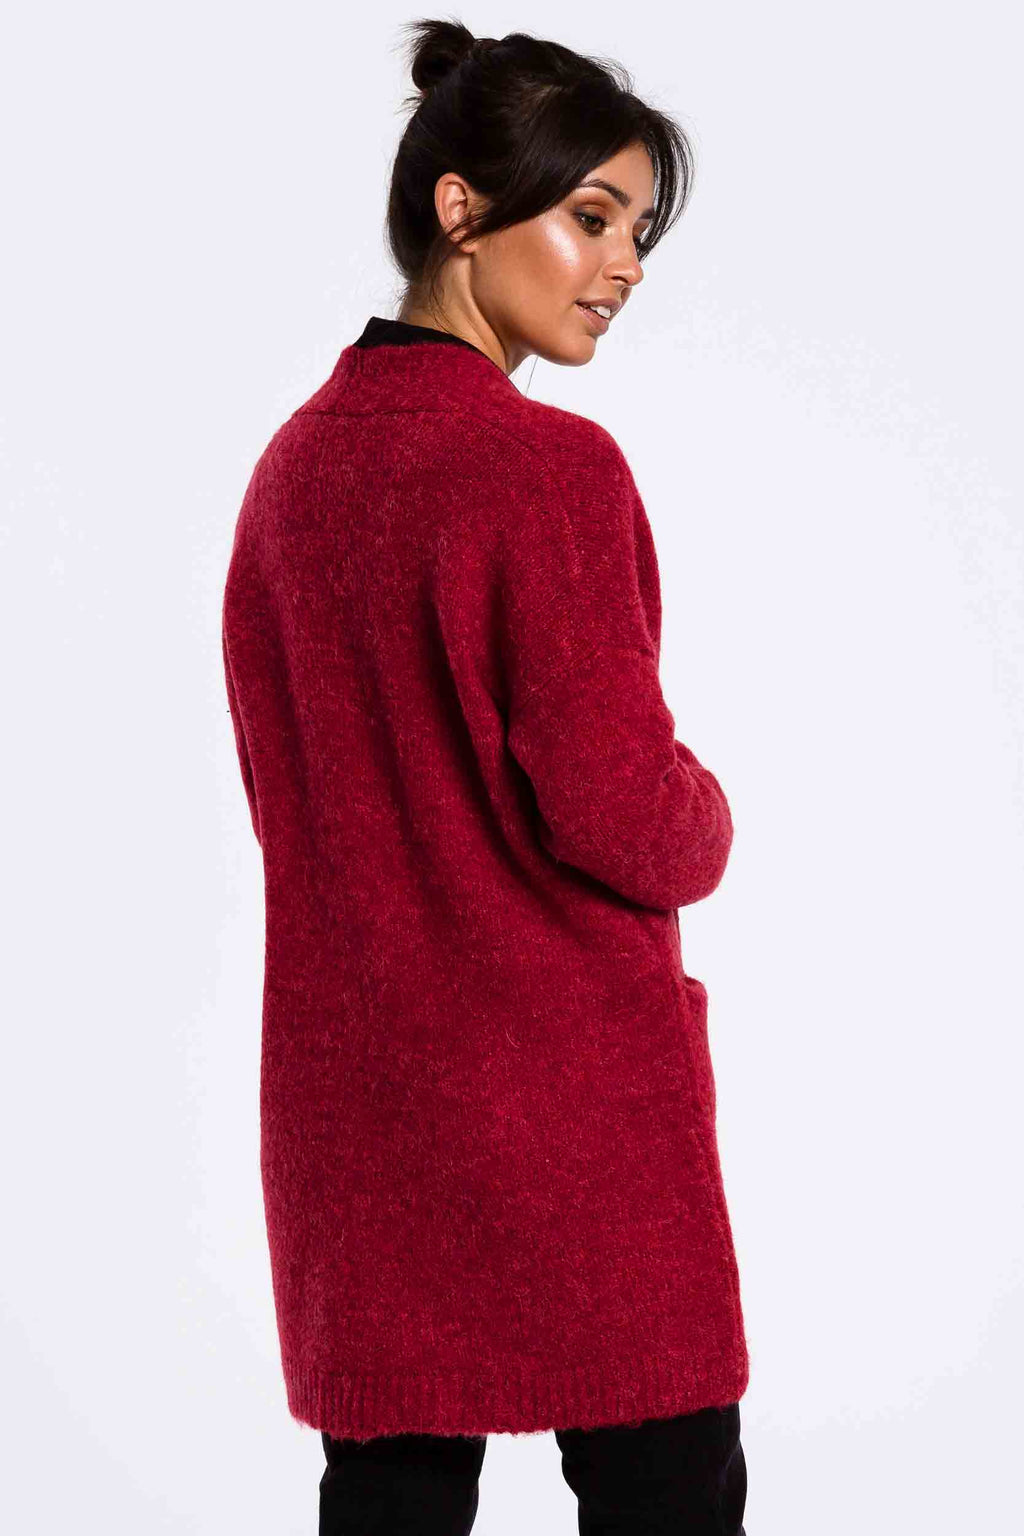 Raspberry Fuzzy Cardigan With Pockets - So Chic Boutique